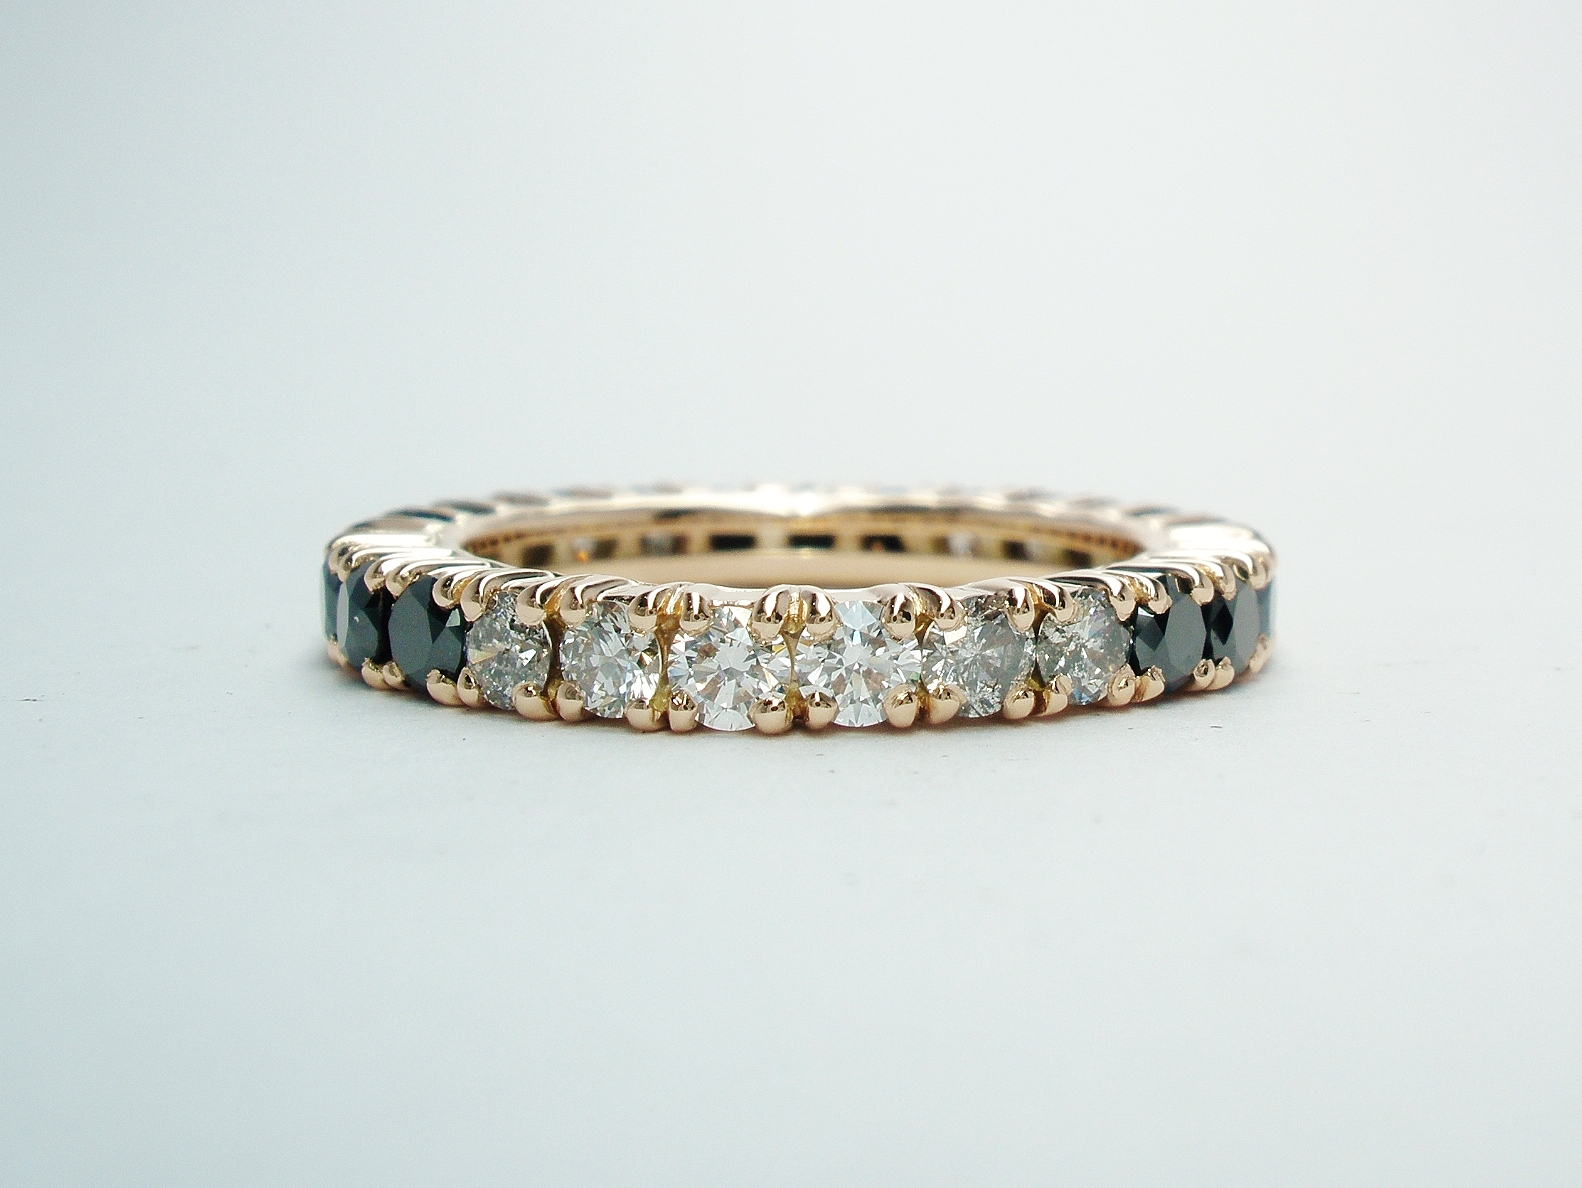 A black, 'grey' & white diamond full hoop diamond ring mounted in red gold.